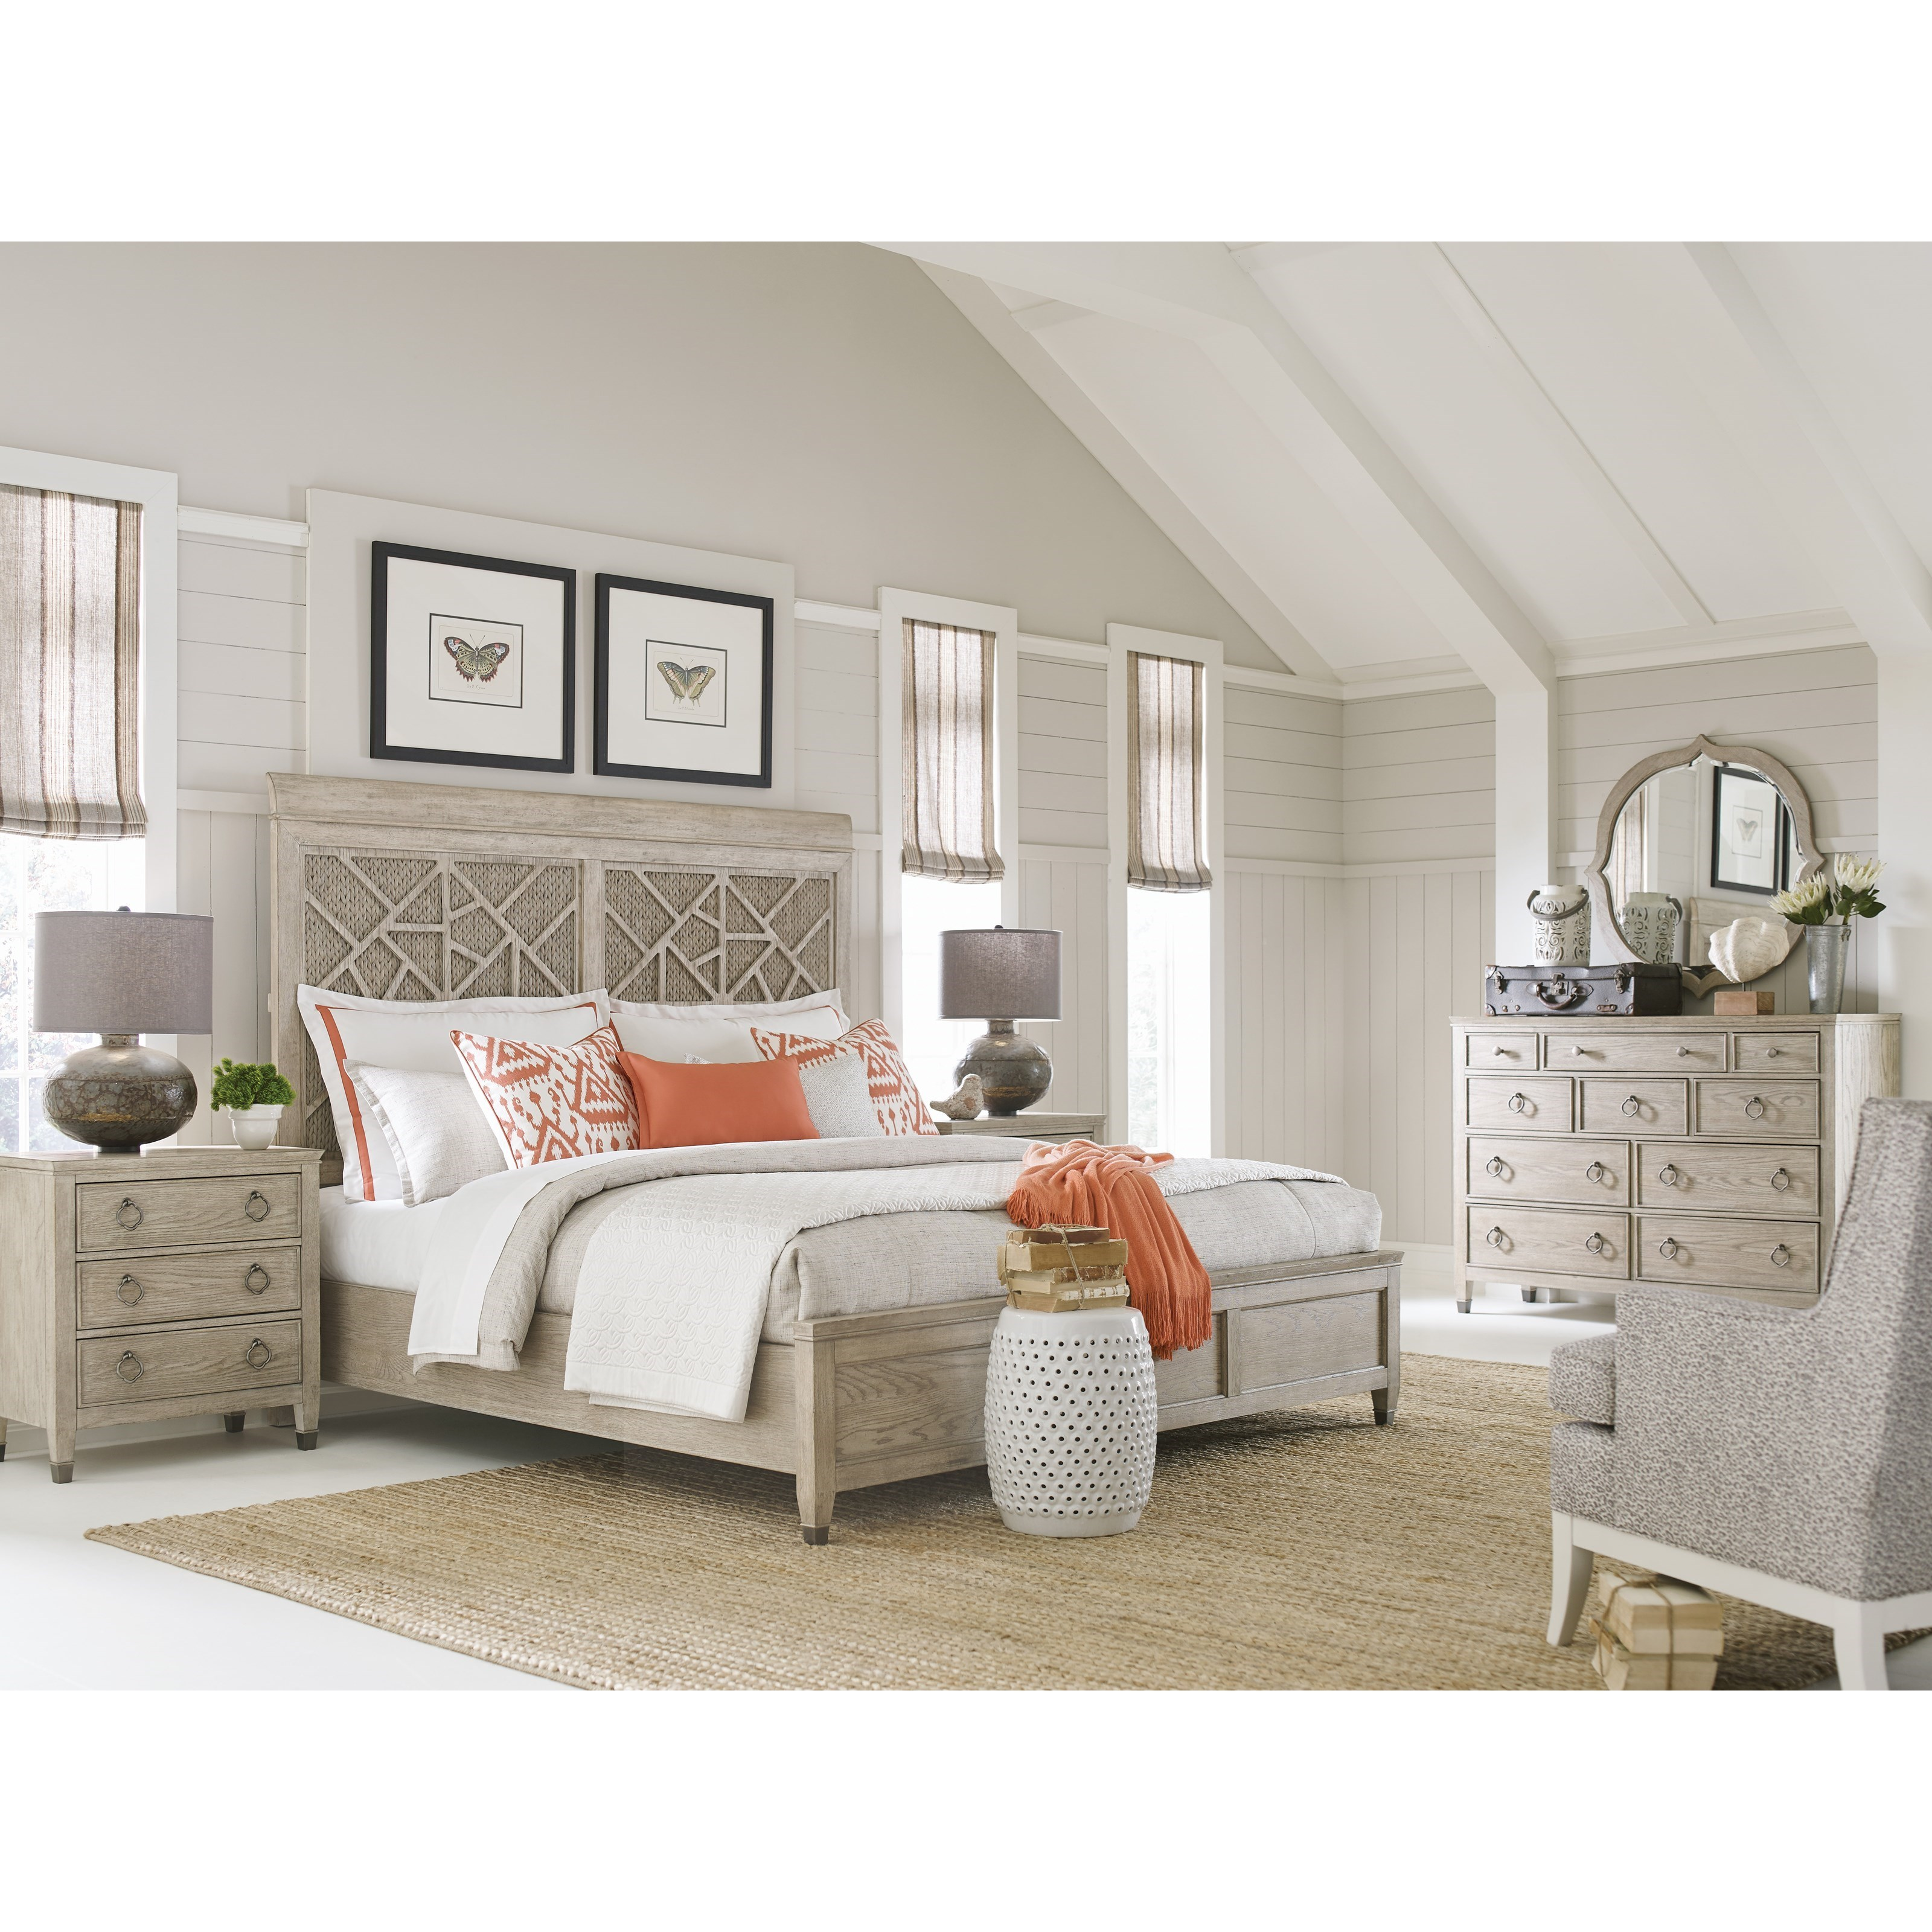 Vista California King Bedroom Group by American Drew at Esprit Decor Home Furnishings